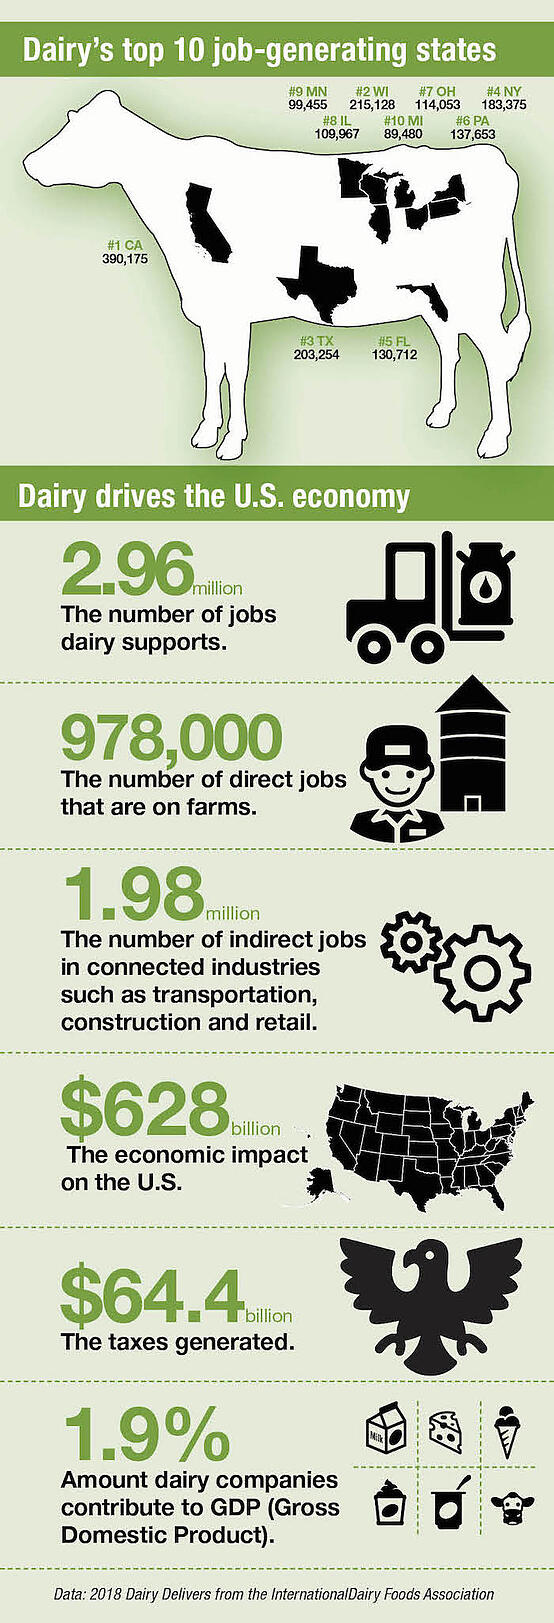 Dairy Herd Management infographic